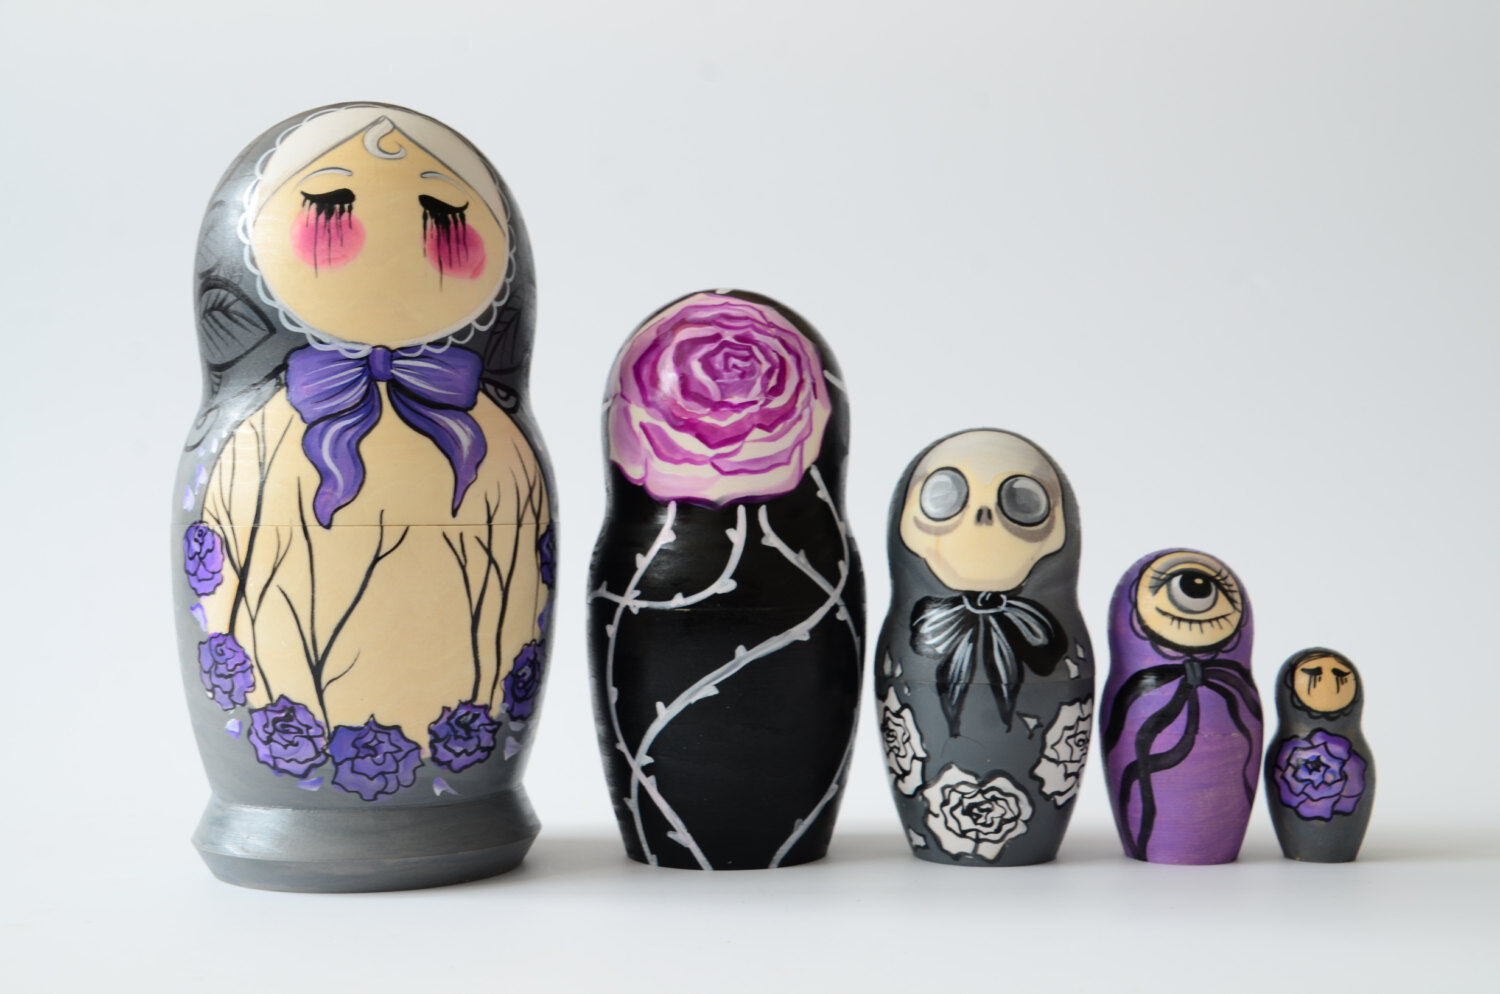 New, Hand Painted Russian Nesting Doll Matryoshka Crazy, Psycho, Made In Russia